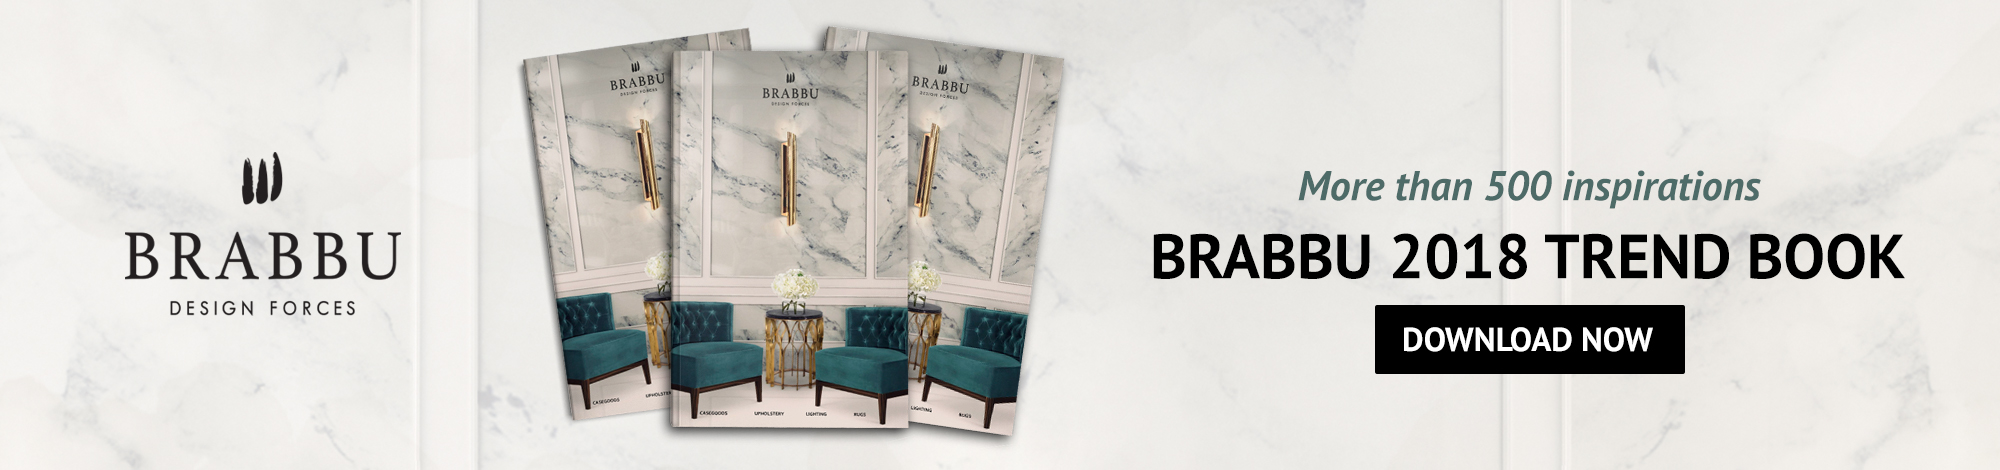 BRABBU Catalogue pillows classic The Pillows Classic Collection You'll Need for 2019  1C5EB82328DCFD5BD10428DB124BD945082C079483CACCDD2D pimgpsh fullsize distr